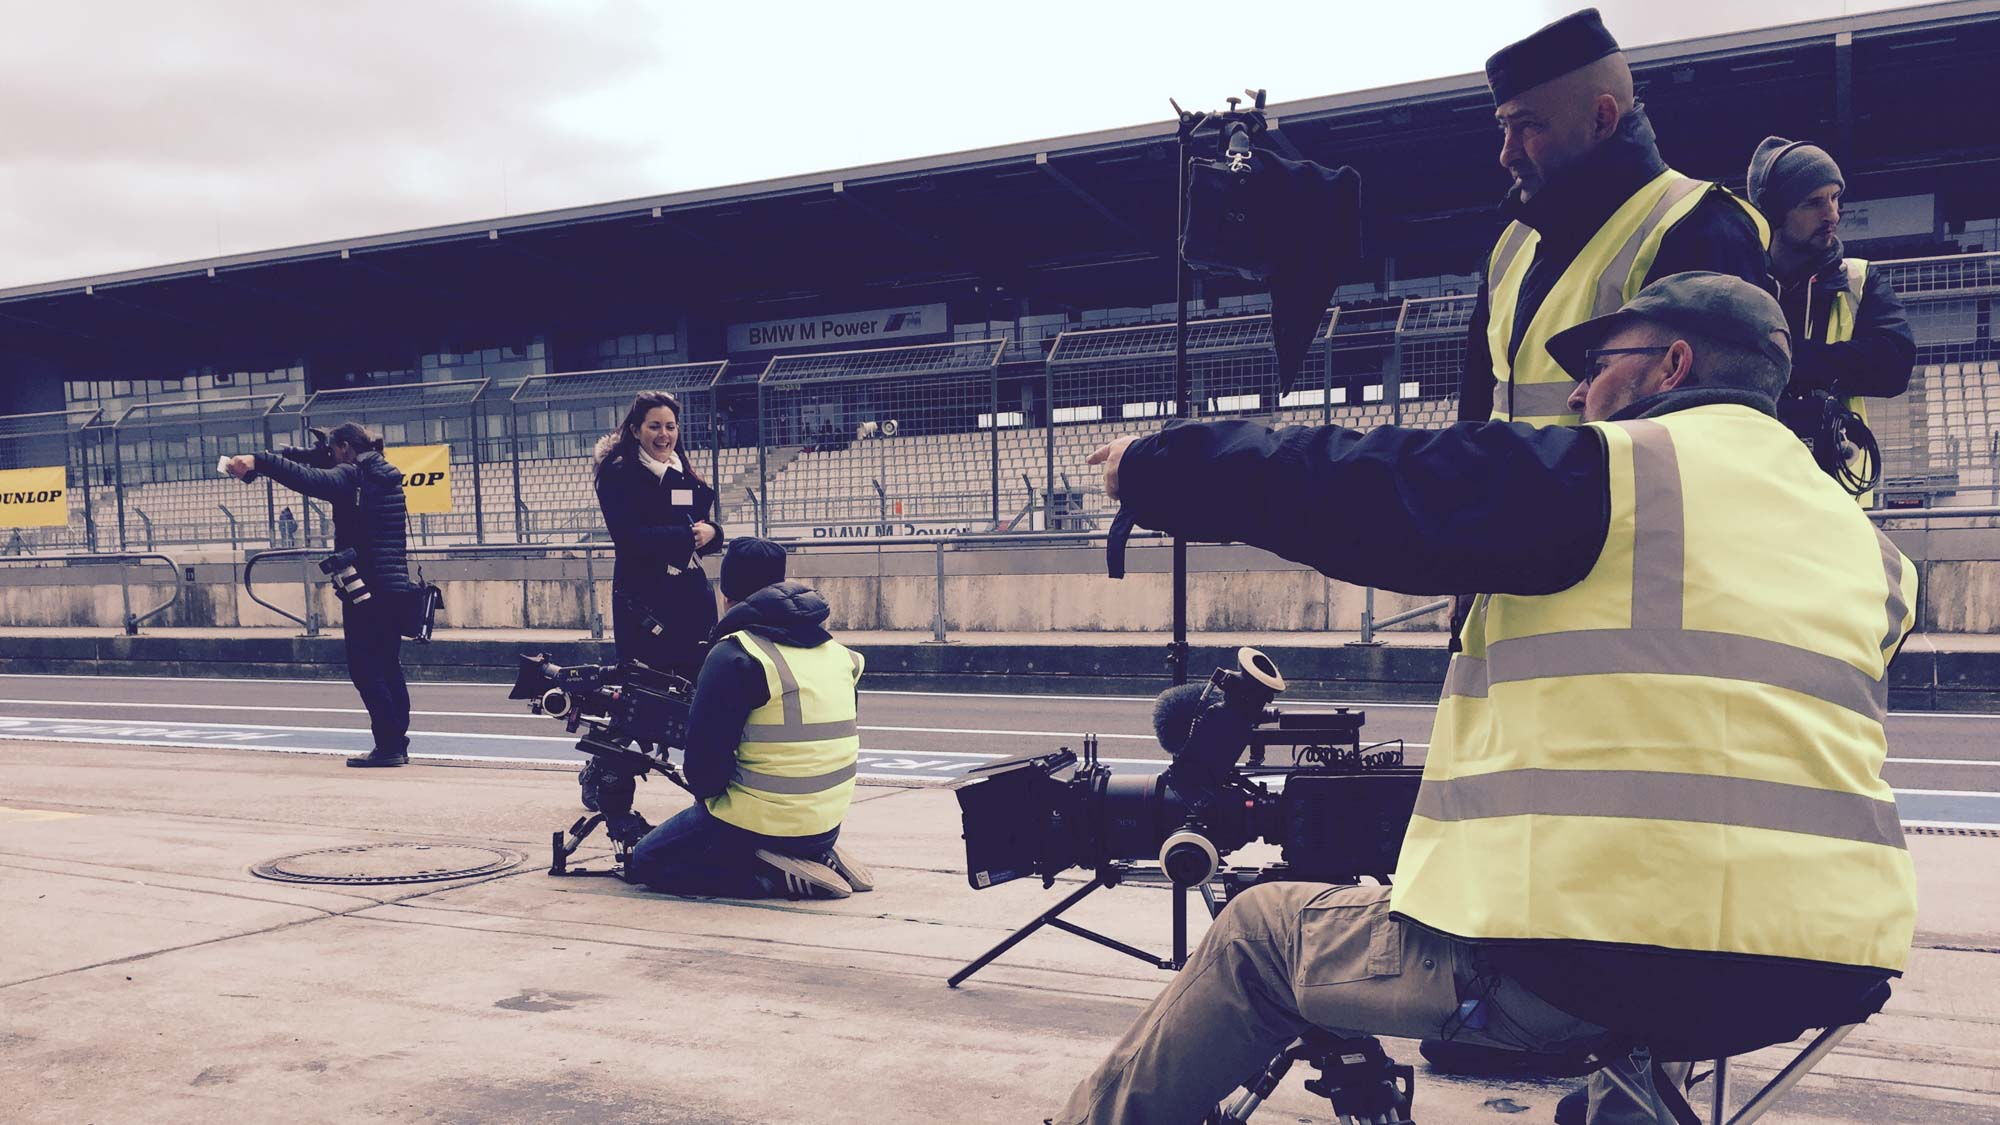 Dunlop - Superhero London - commercial production Germany, local DOP, Nürburgring